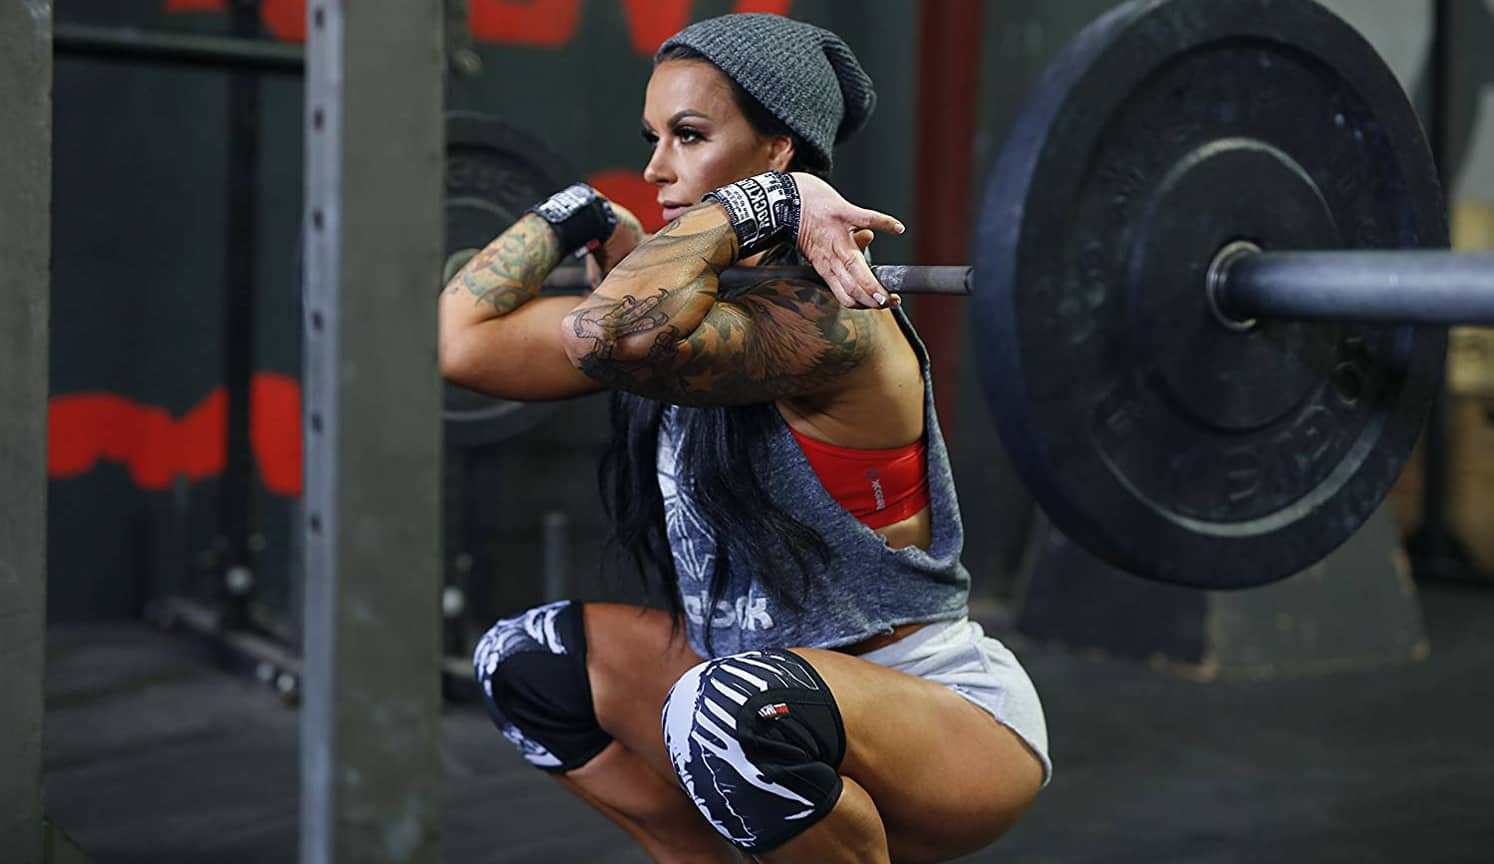 Crossfit Knee Sleeves as the second related product of the Best Knee Brace